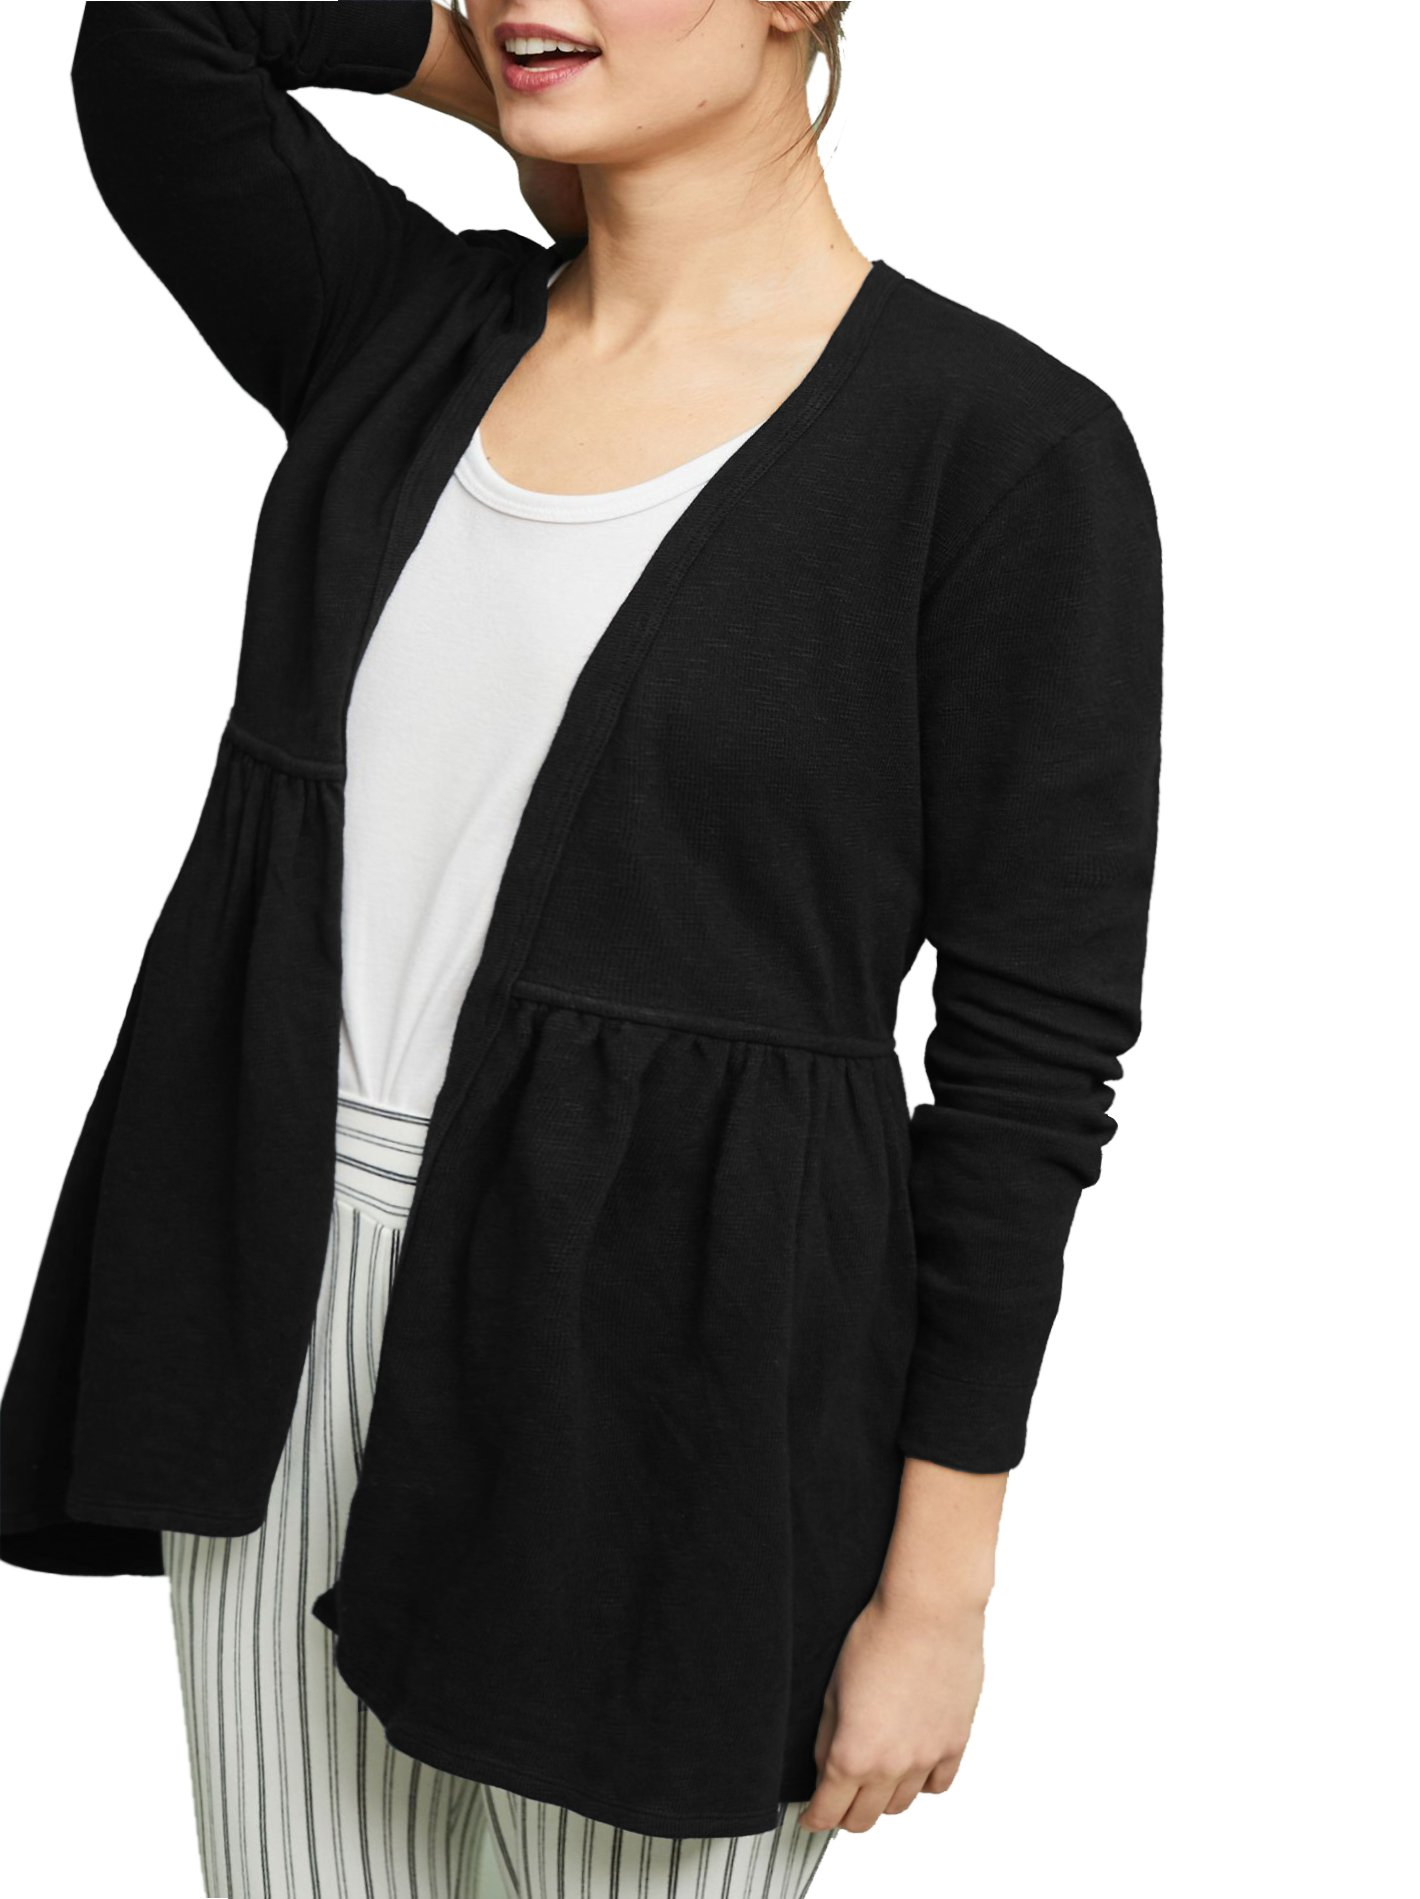 Rotita Women Open Front Knit Cardigan Plus Size Long Sleeve Ruffle Pleated Sweater Outwear